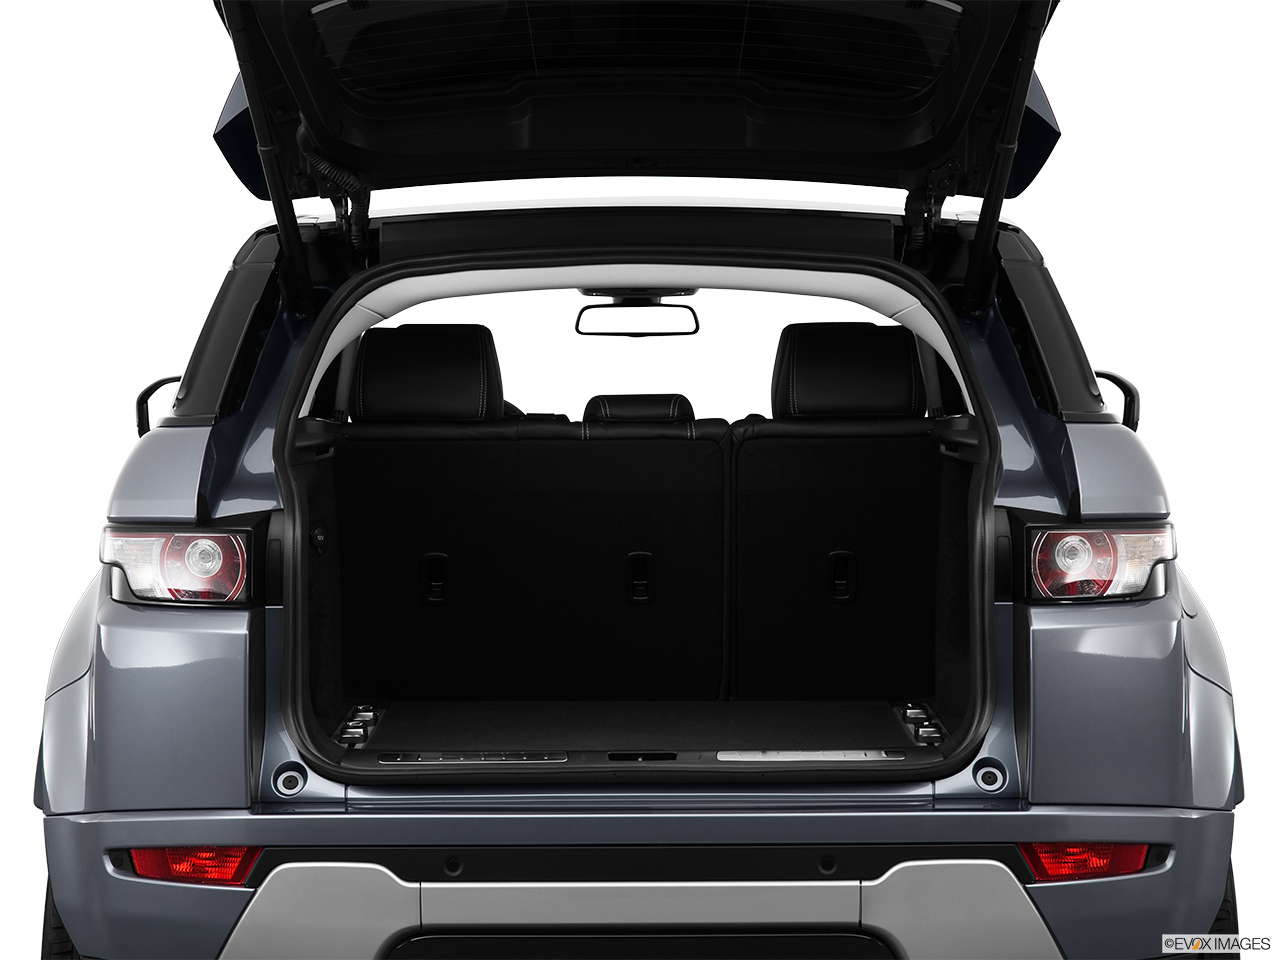 2014 land rover range rover evoque 5dr hatchback dynamic trunk open. Black Bedroom Furniture Sets. Home Design Ideas